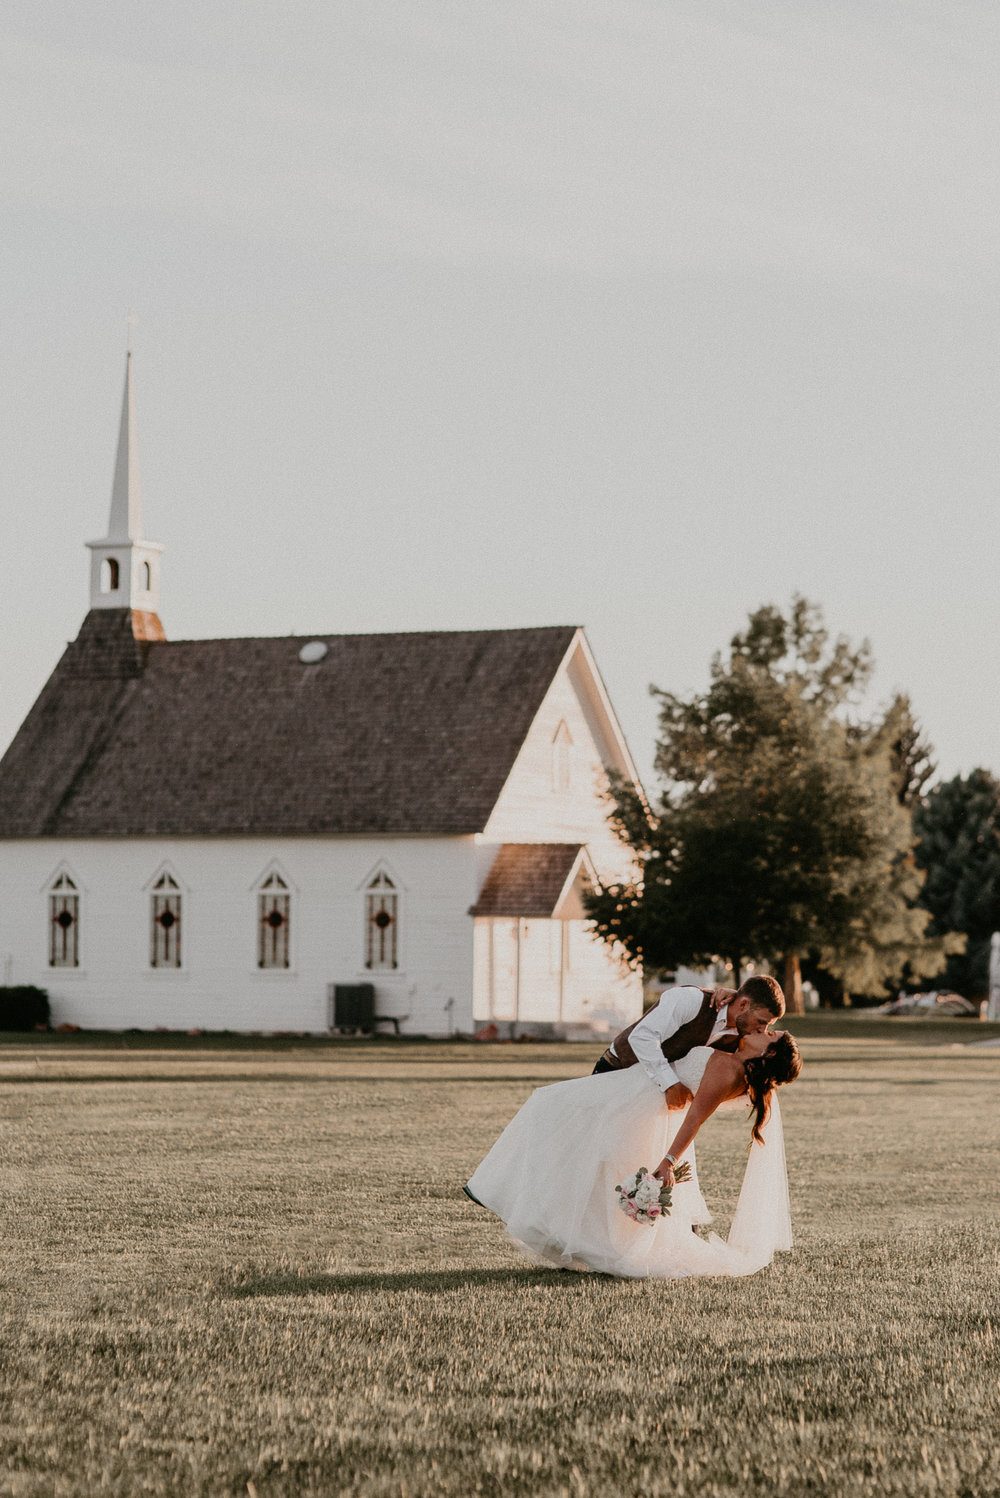 Boise Wedding Boise Senior Photographer Makayla Madden Photography Still Water Hollow Boise Wedding Venue Country Chic Rustic Bride and Groom Idaho Bride Summer Wedding Ideas Bridal Portraits Idaho